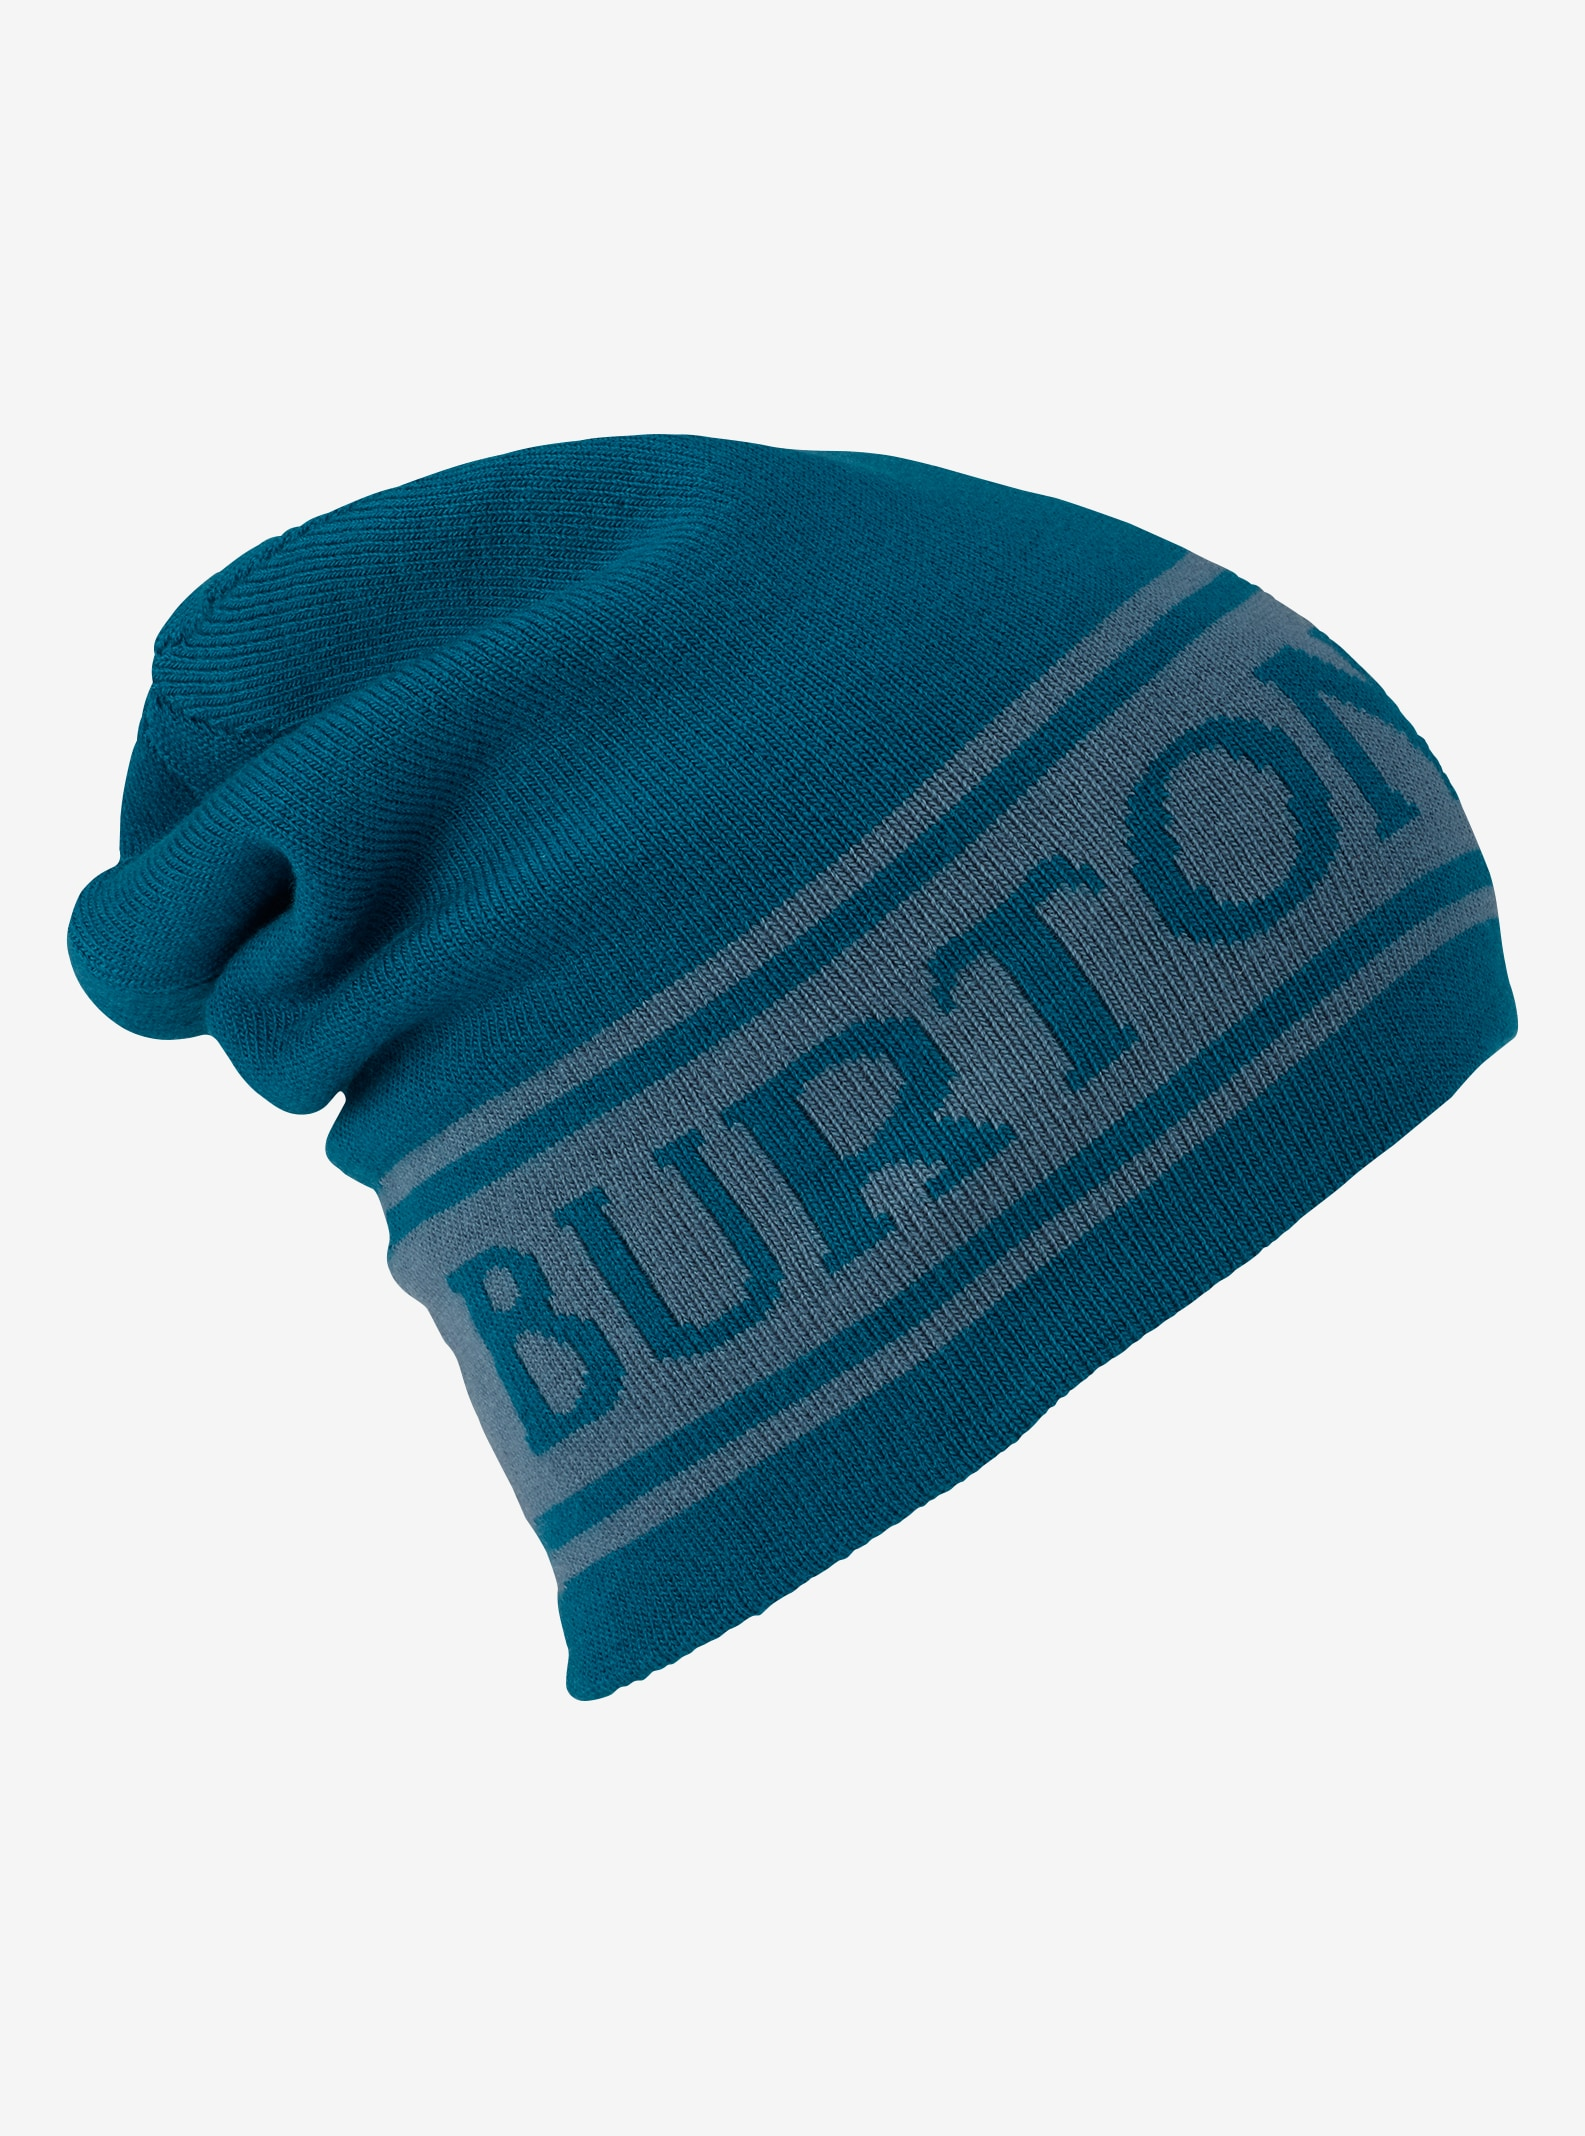 Burton Billboard Slouch Beanie - Reversible shown in Jasper / Winter Sky